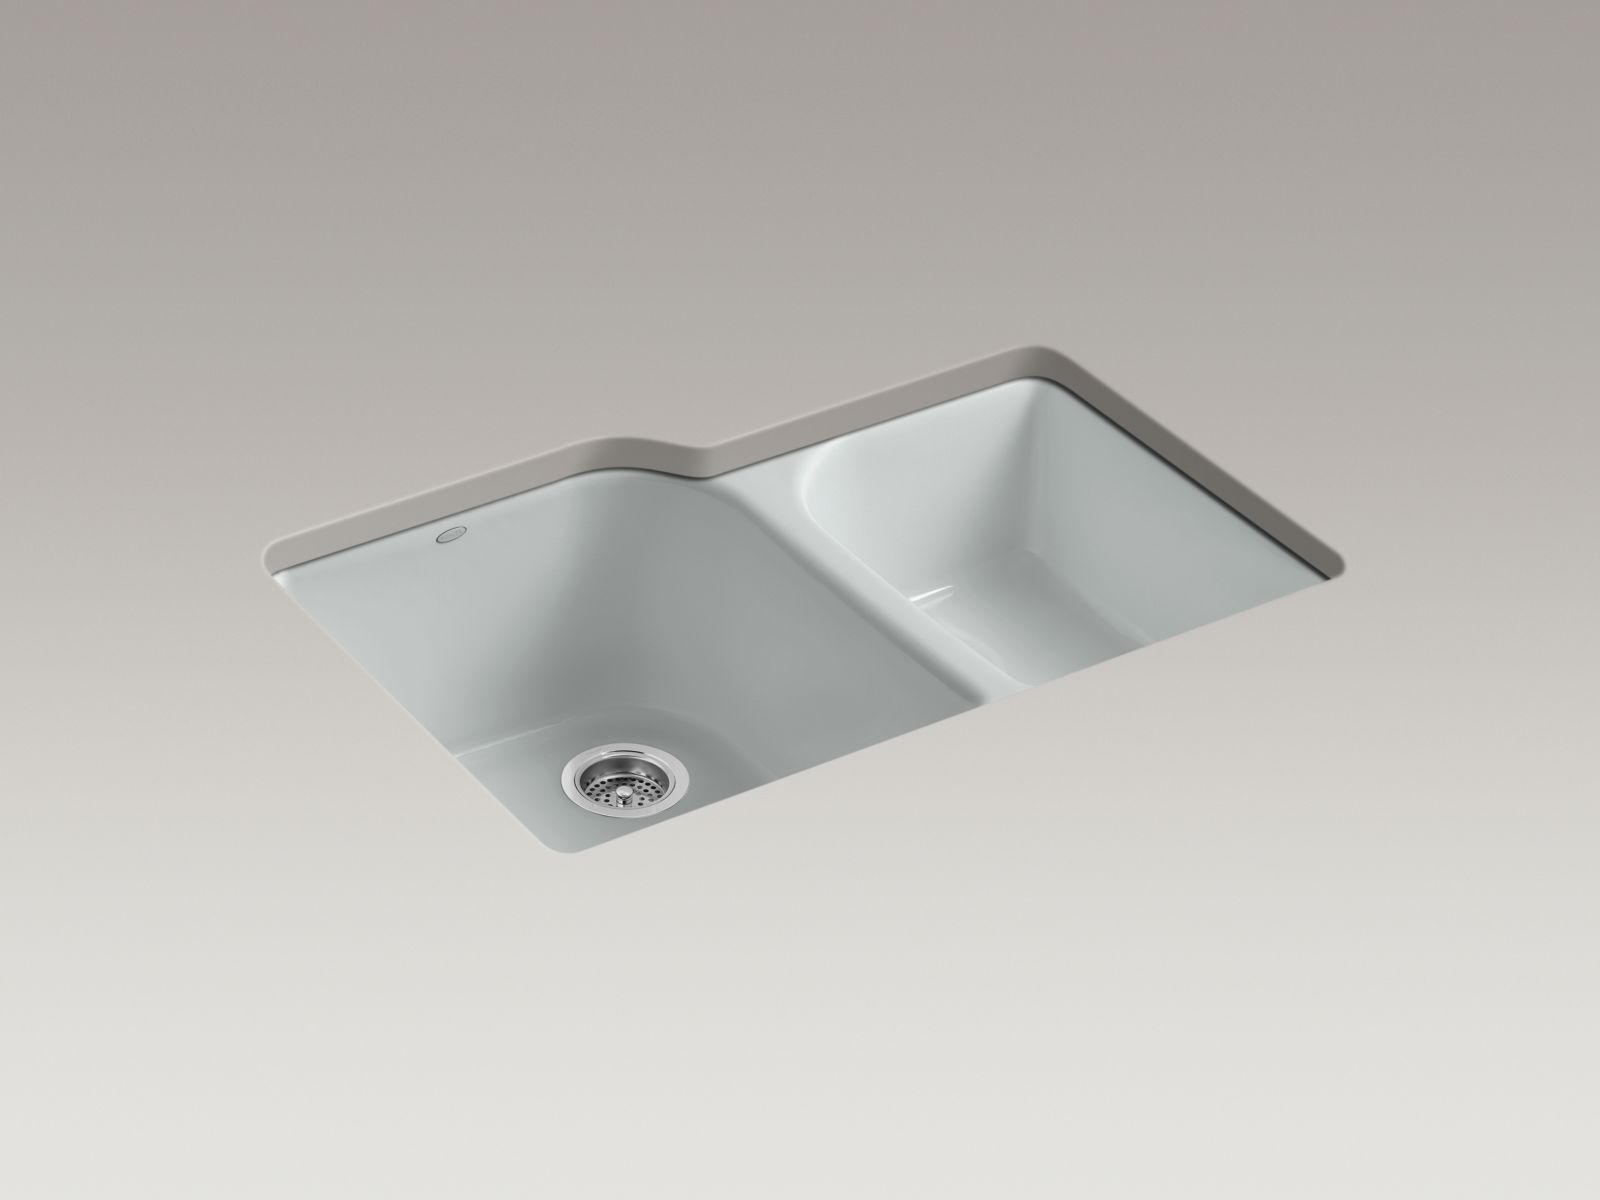 Kohler K-5931-4U-95 Executive Chef Undermount Deep and Shallow Bowl Kitchen Sink with 4 Faucet Holes Ice Grey